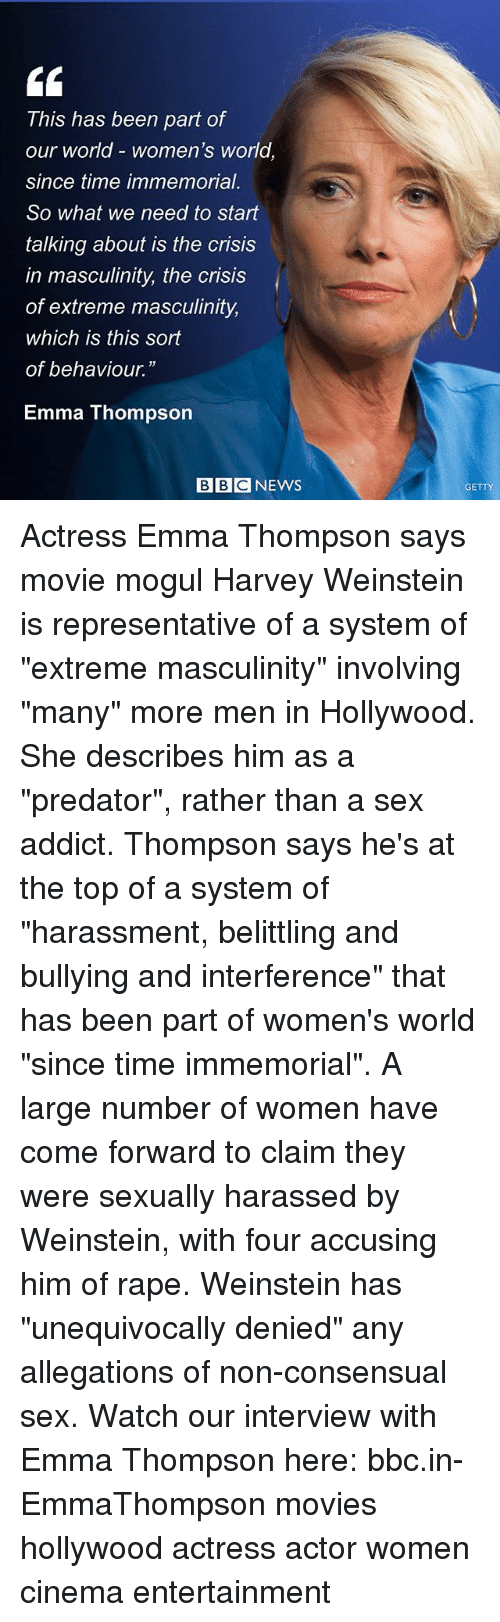 "Memes, Movies, and Sex: This has been part of  our world - women's world  since time immemorial.  So what we need to start  talking about is the crisis  in masculinity, the crisis  of extreme masculinity,  which is this sort  of behaviour.  Emma Thompson  BBCNEWS  GETTY Actress Emma Thompson says movie mogul Harvey Weinstein is representative of a system of ""extreme masculinity"" involving ""many"" more men in Hollywood. She describes him as a ""predator"", rather than a sex addict. Thompson says he's at the top of a system of ""harassment, belittling and bullying and interference"" that has been part of women's world ""since time immemorial"". A large number of women have come forward to claim they were sexually harassed by Weinstein, with four accusing him of rape. Weinstein has ""unequivocally denied"" any allegations of non-consensual sex. Watch our interview with Emma Thompson here: bbc.in-EmmaThompson movies hollywood actress actor women cinema entertainment"